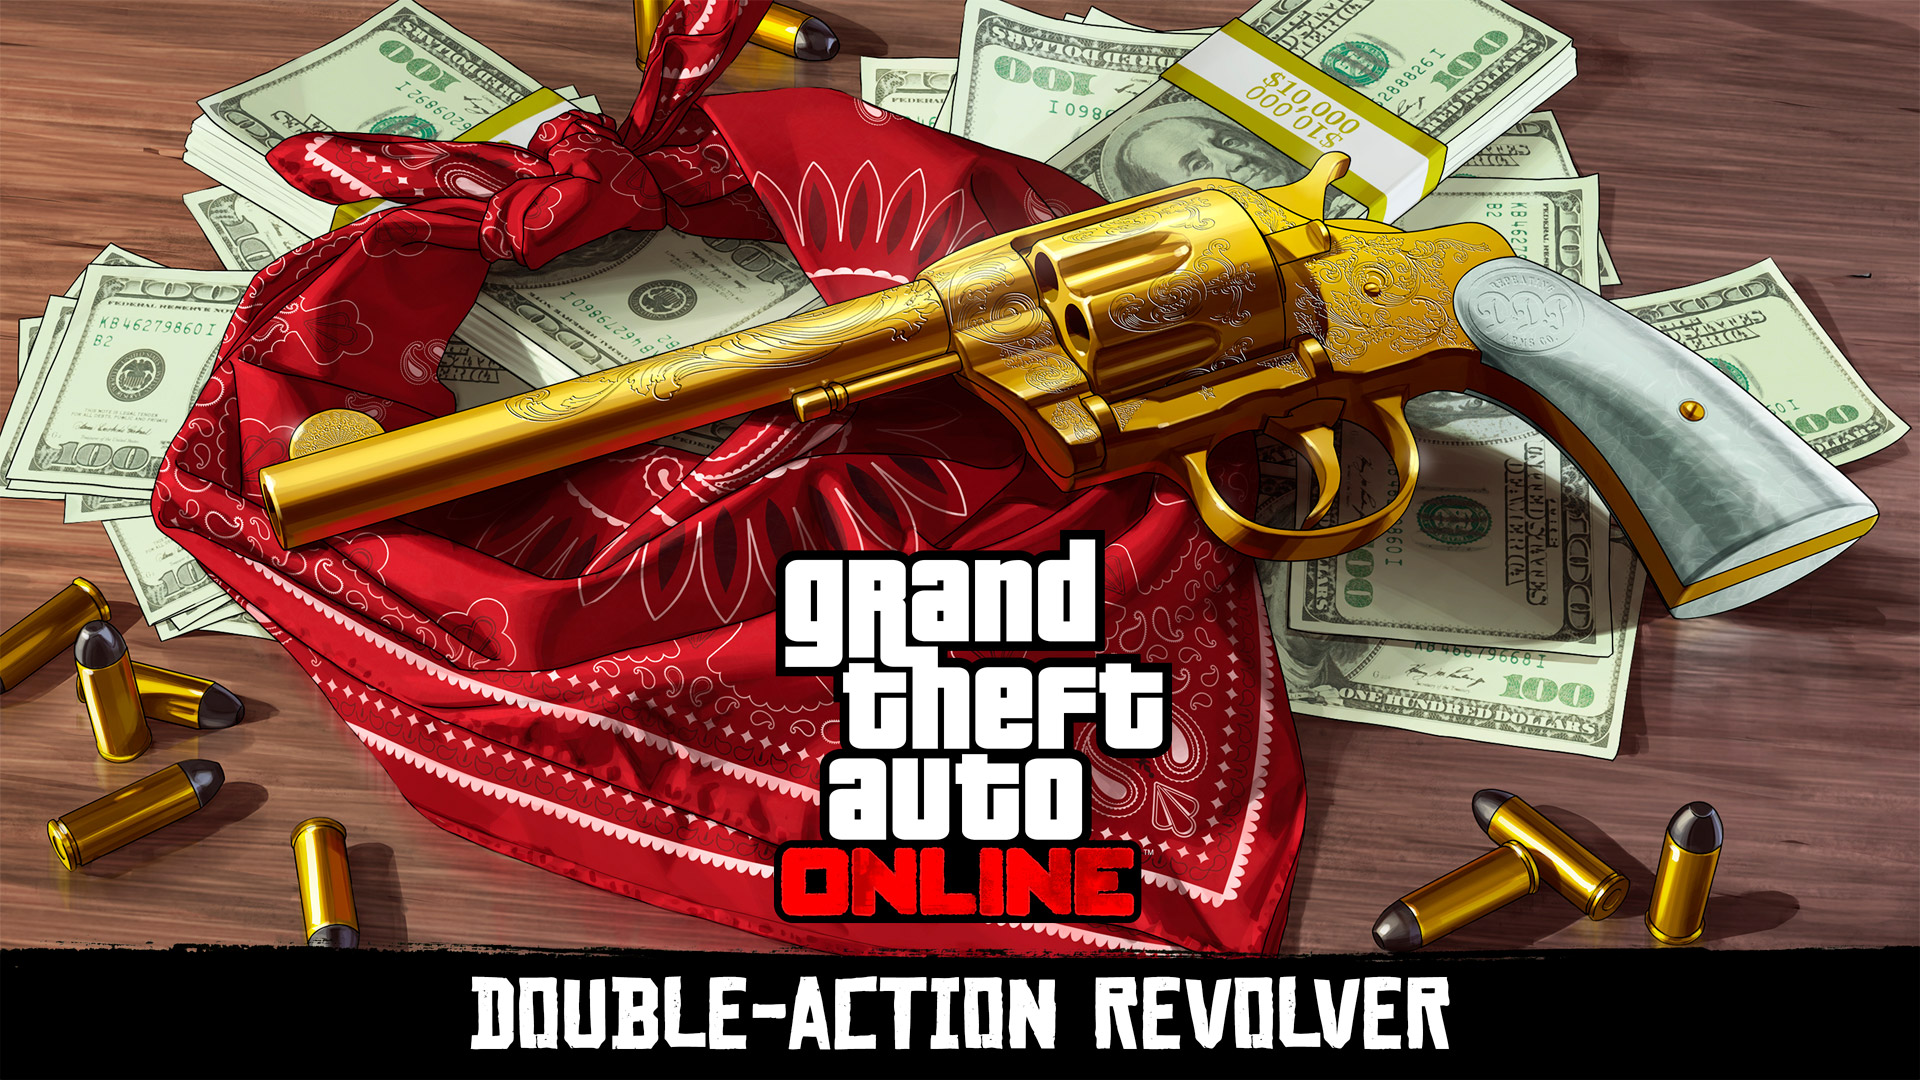 Red Dead Redemption 2: how to unlock the Double-Action Revolver